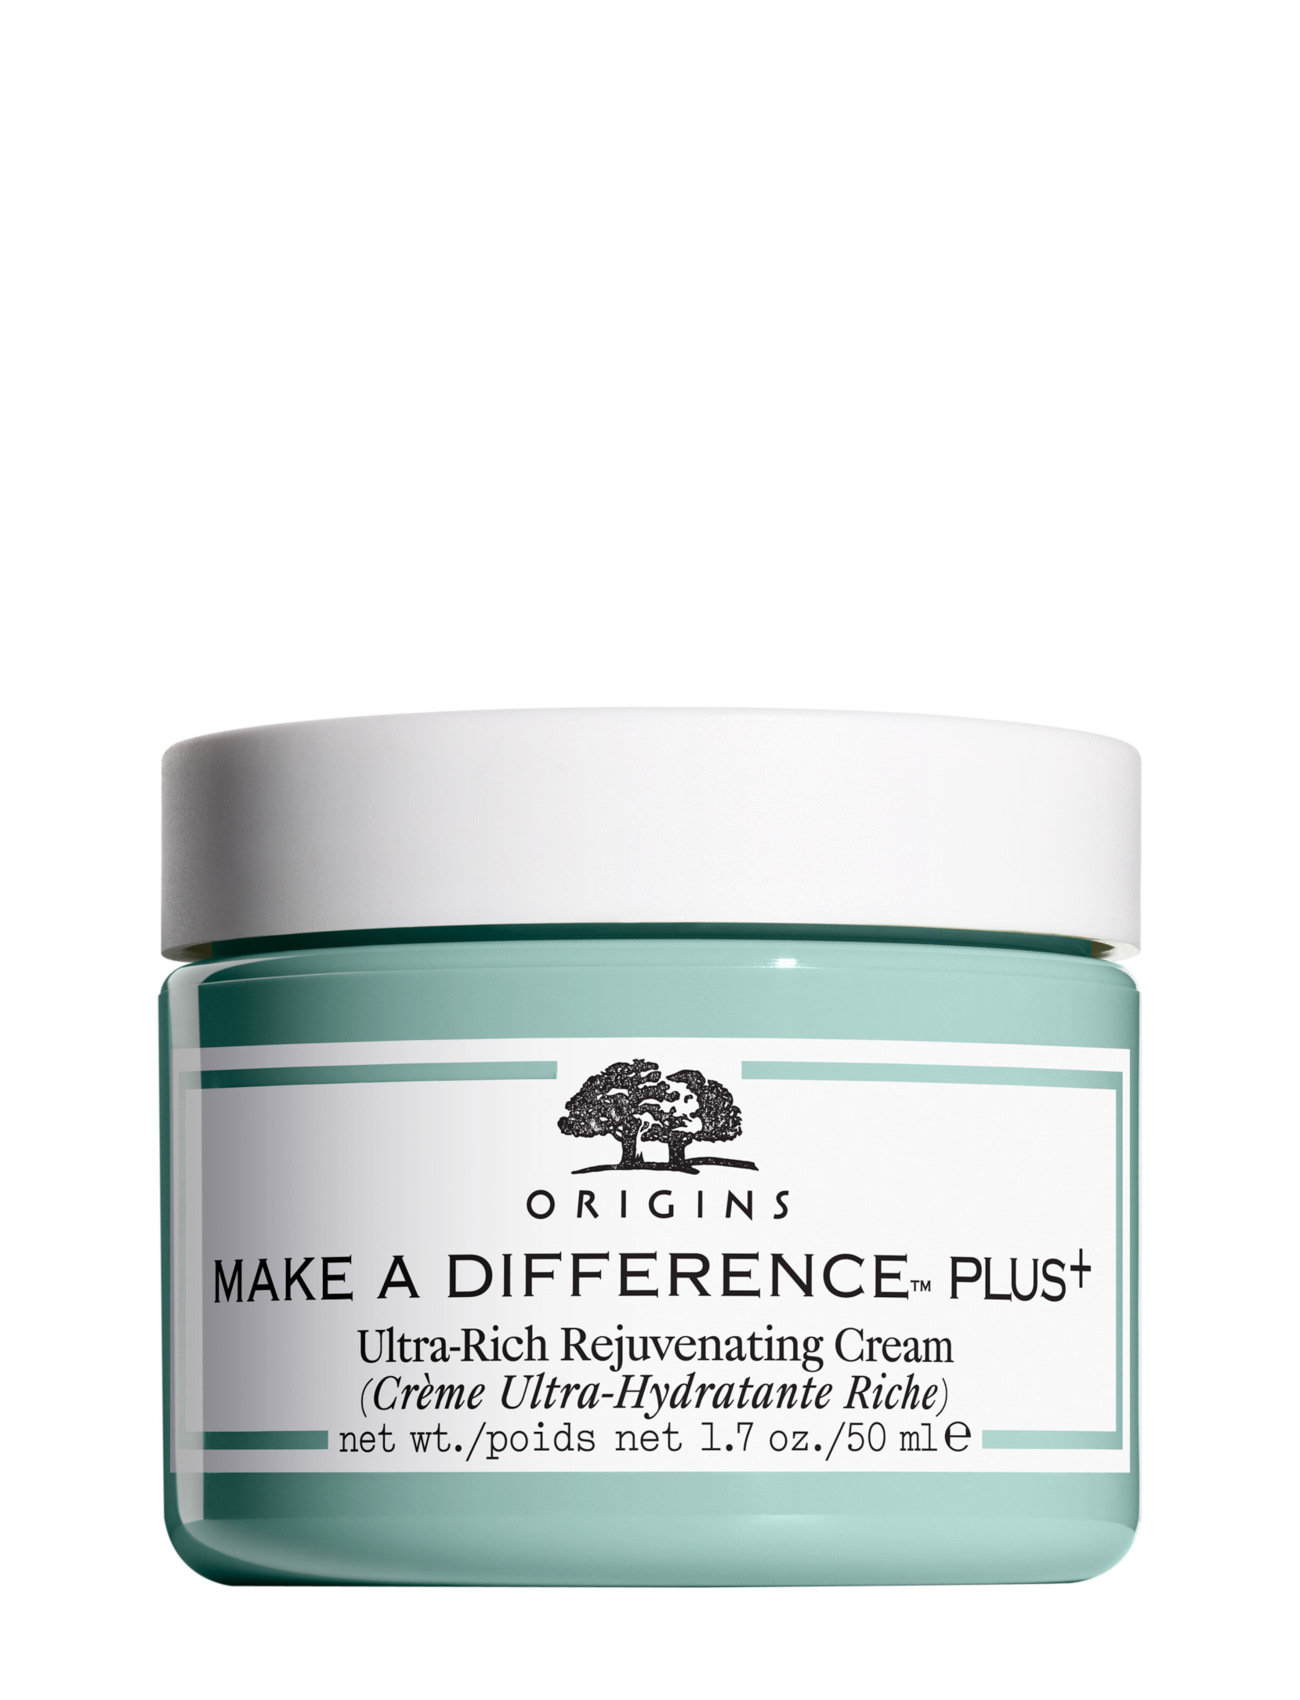 origins – Make a difference™ plus + ultra-rich rejuvenating cream på boozt.com dk